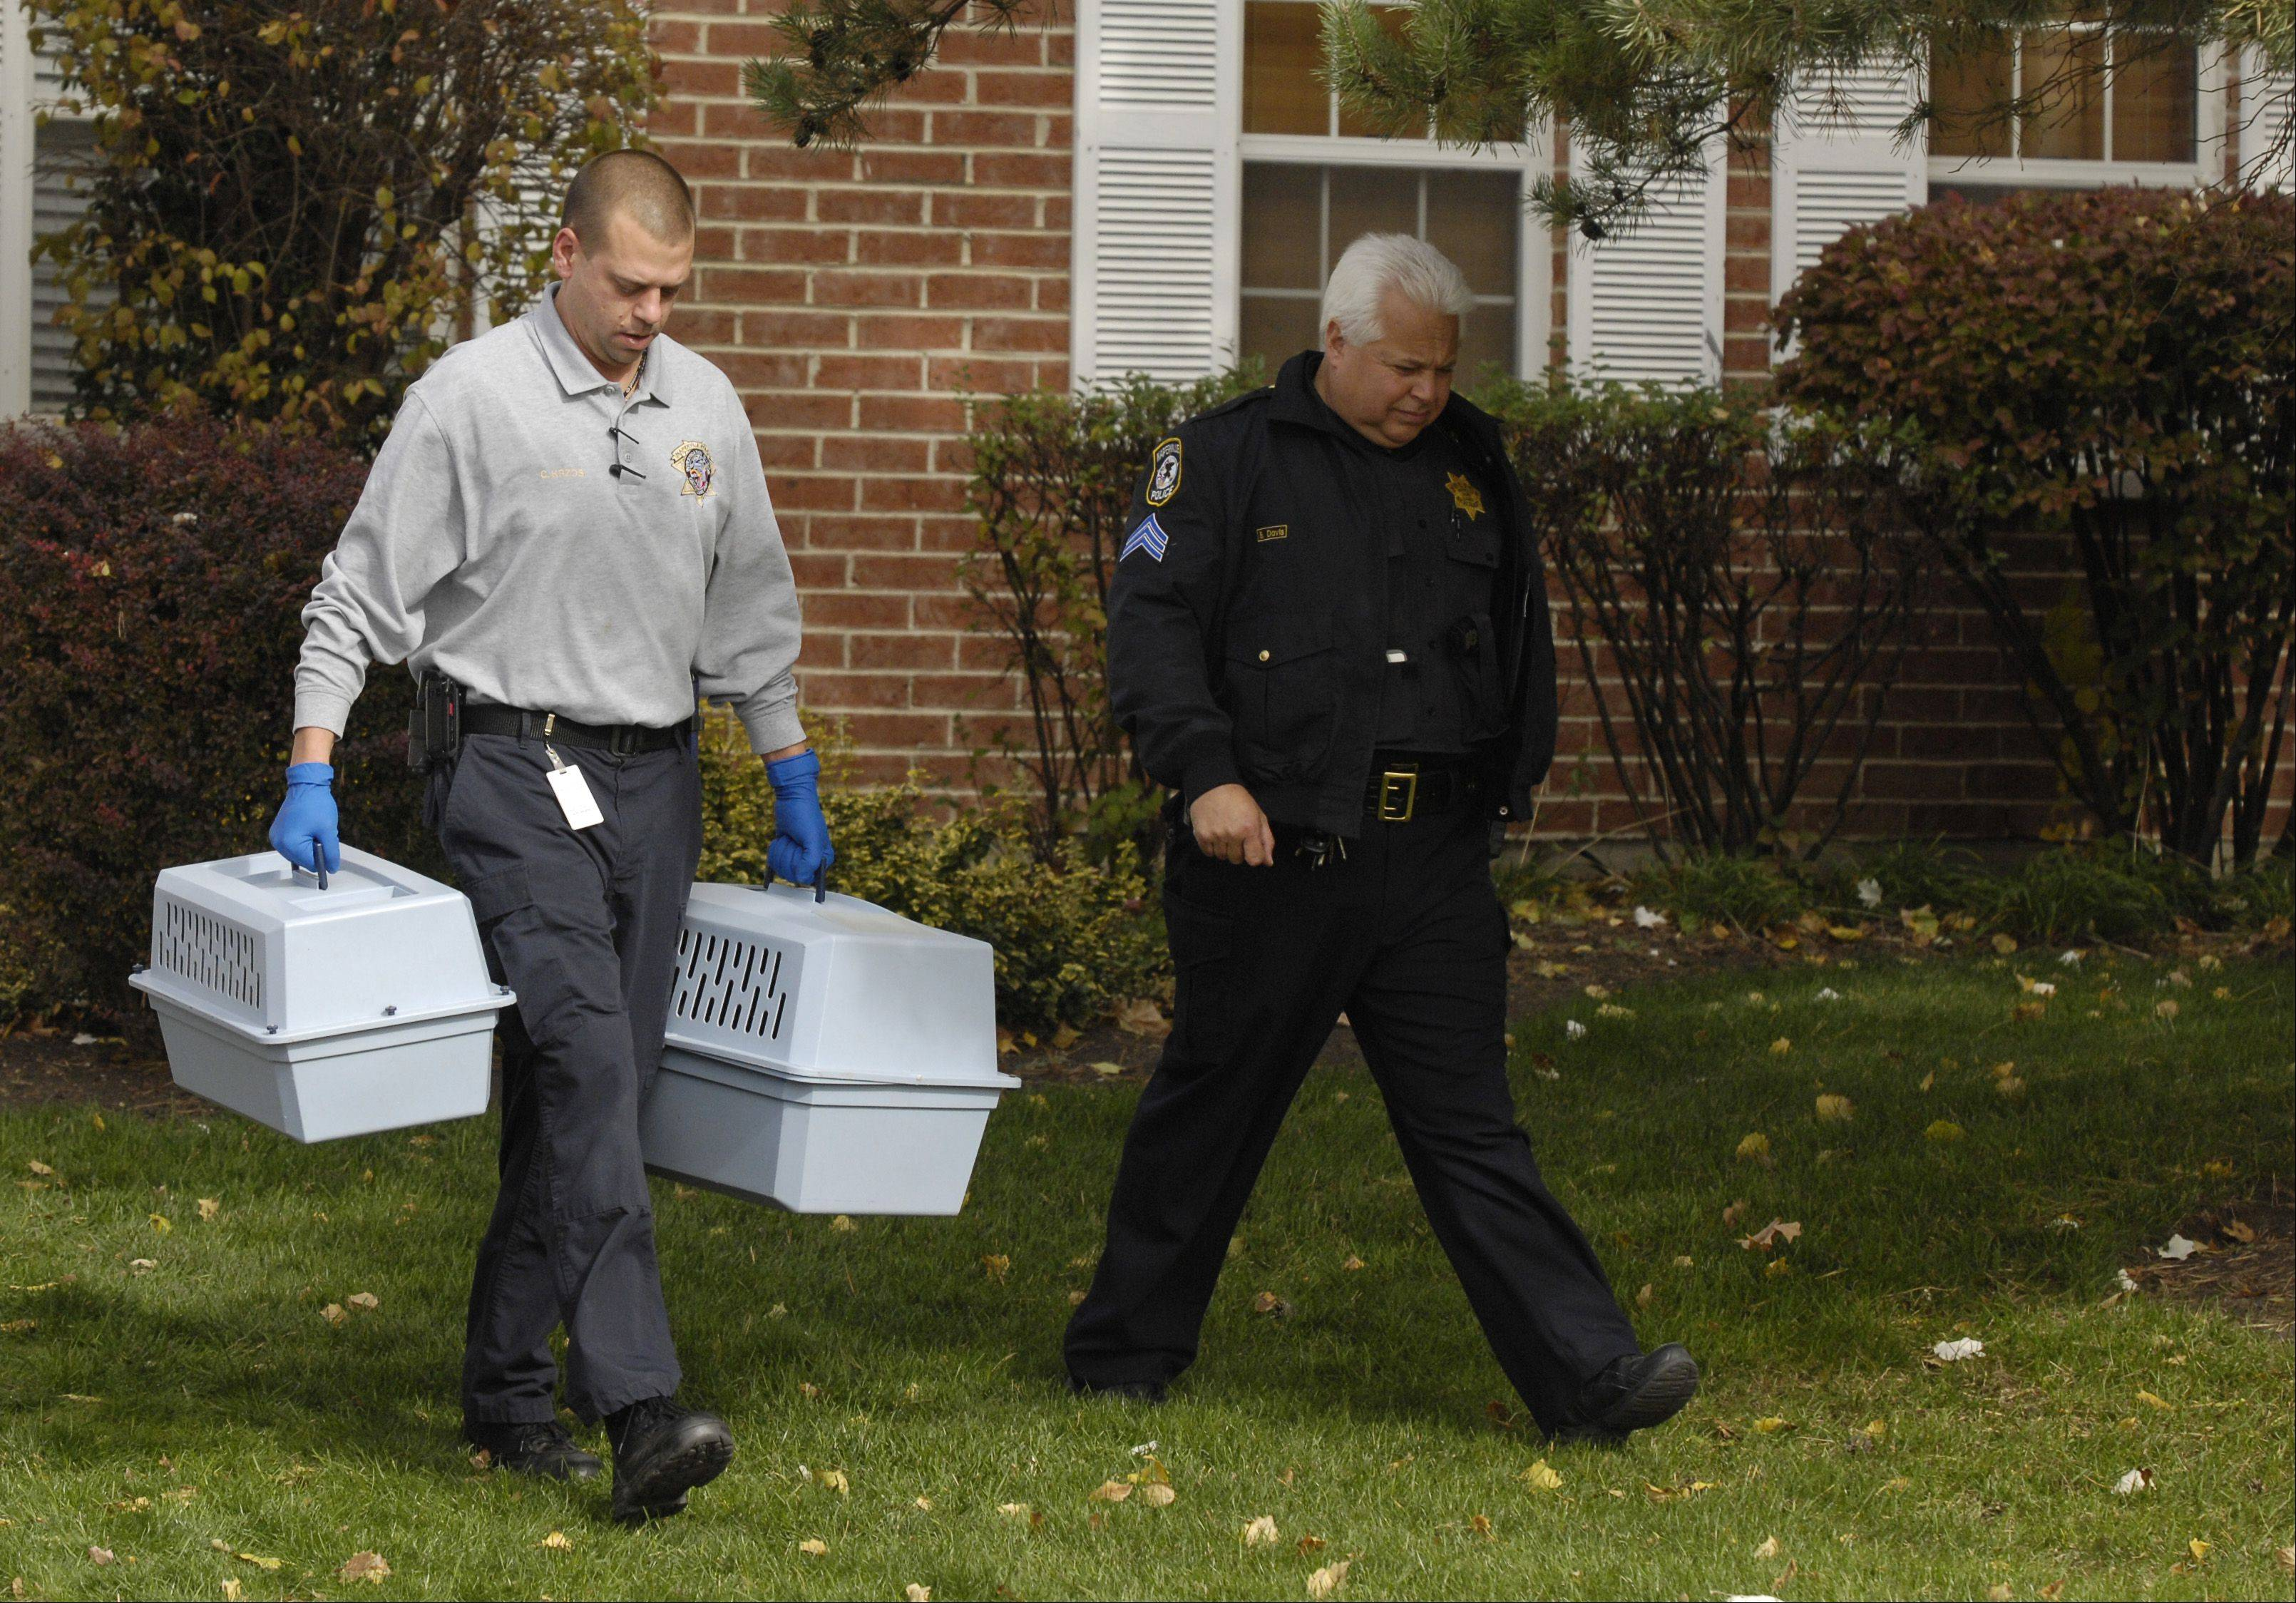 Naperville Animal Control removes two pets who were presumably killed along with two children at a home on the 800 block of Quin Court in Naperville.